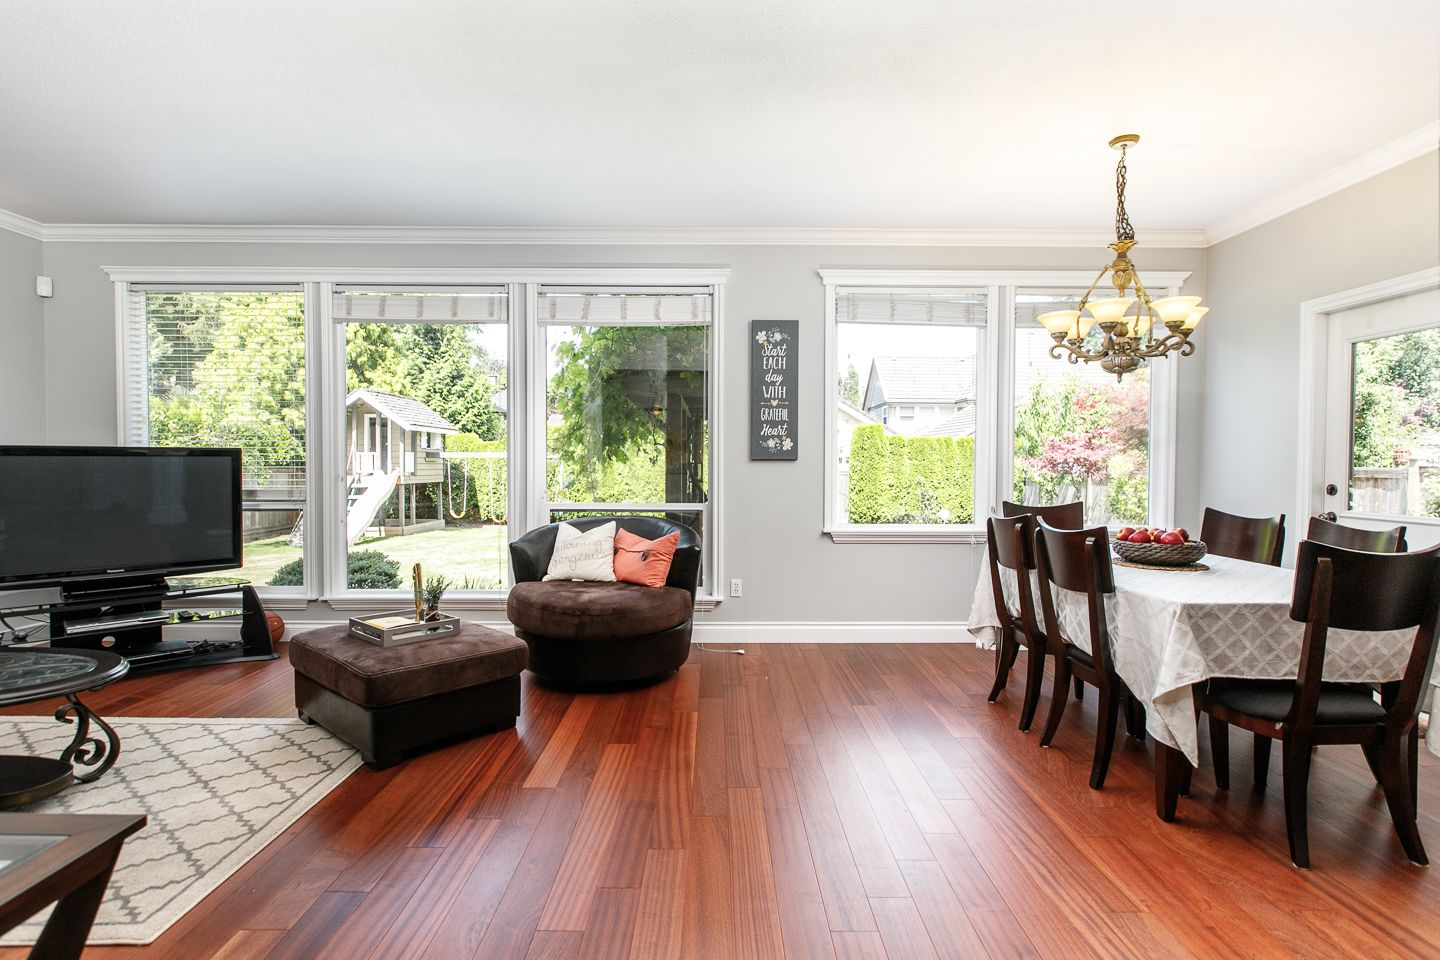 Photo 4: Photos: 14135 23A STREET in SOUTH SURREY WHITE ROCK: Sunnyside Park Surrey House for sale (South Surrey White Rock)  : MLS®# R2349560